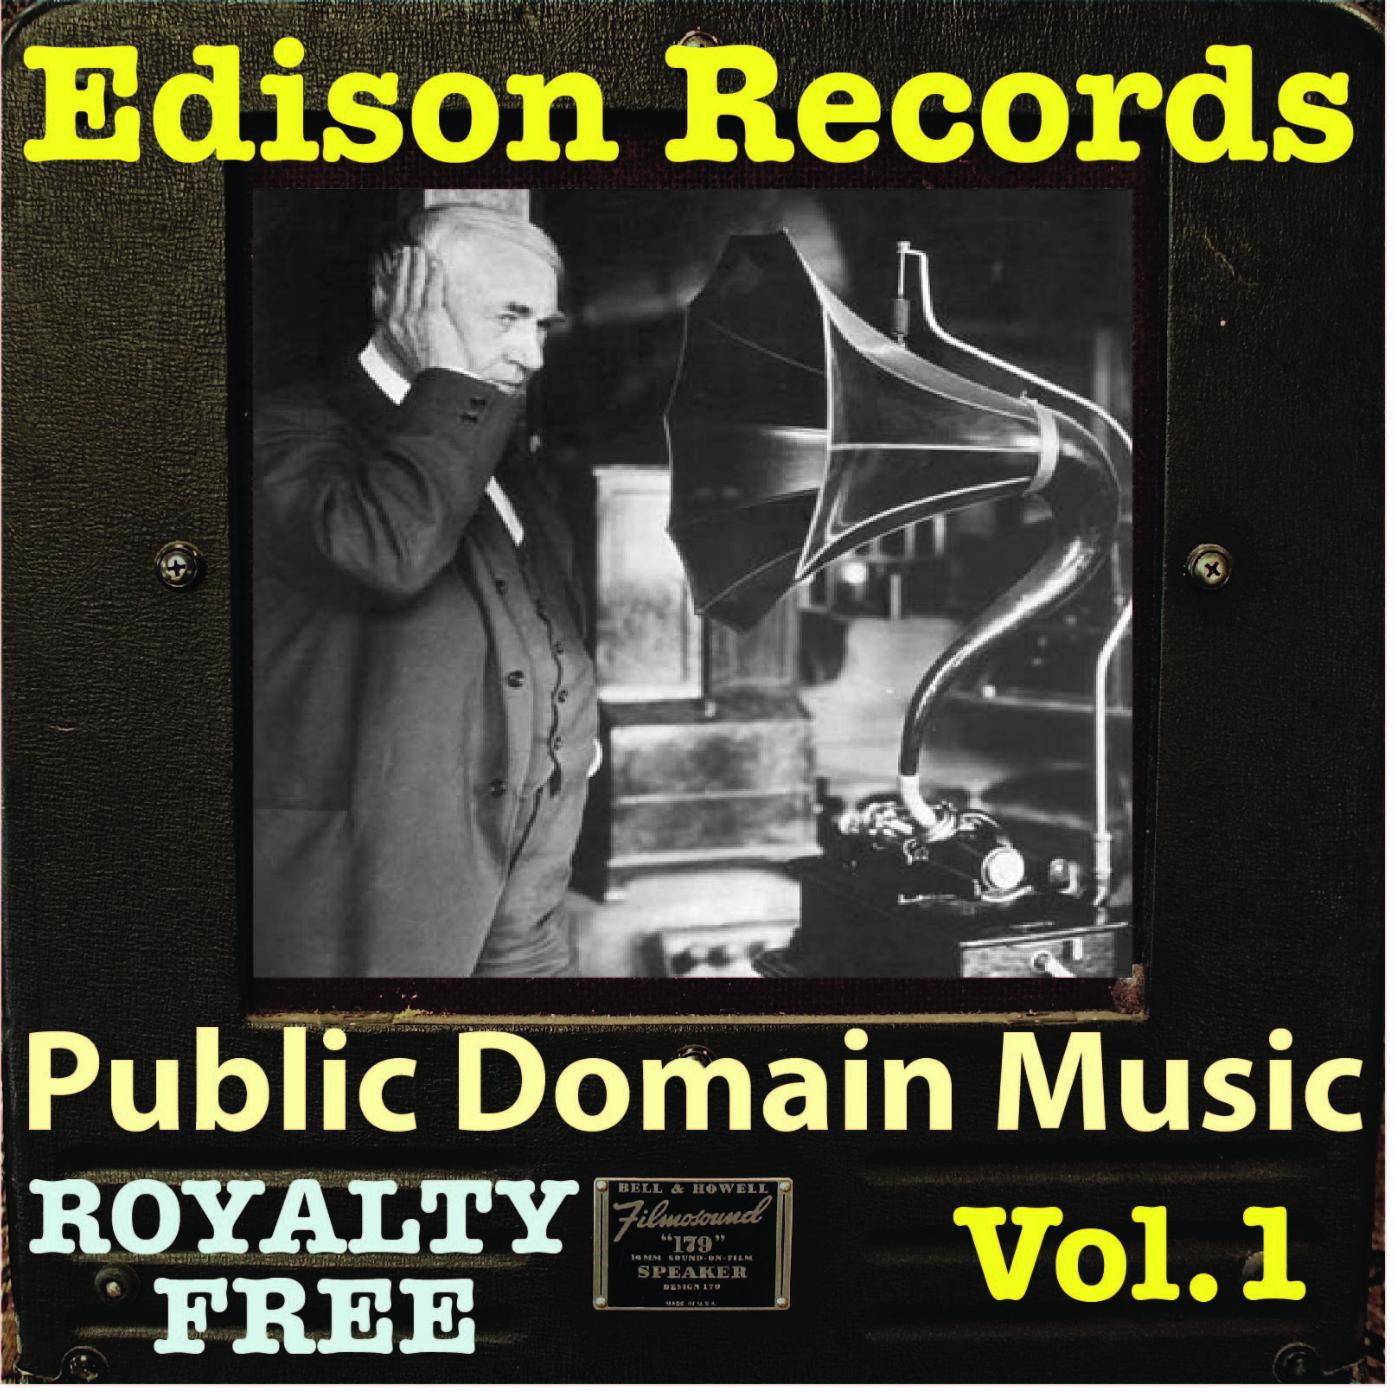 how to find out if a song is public domain